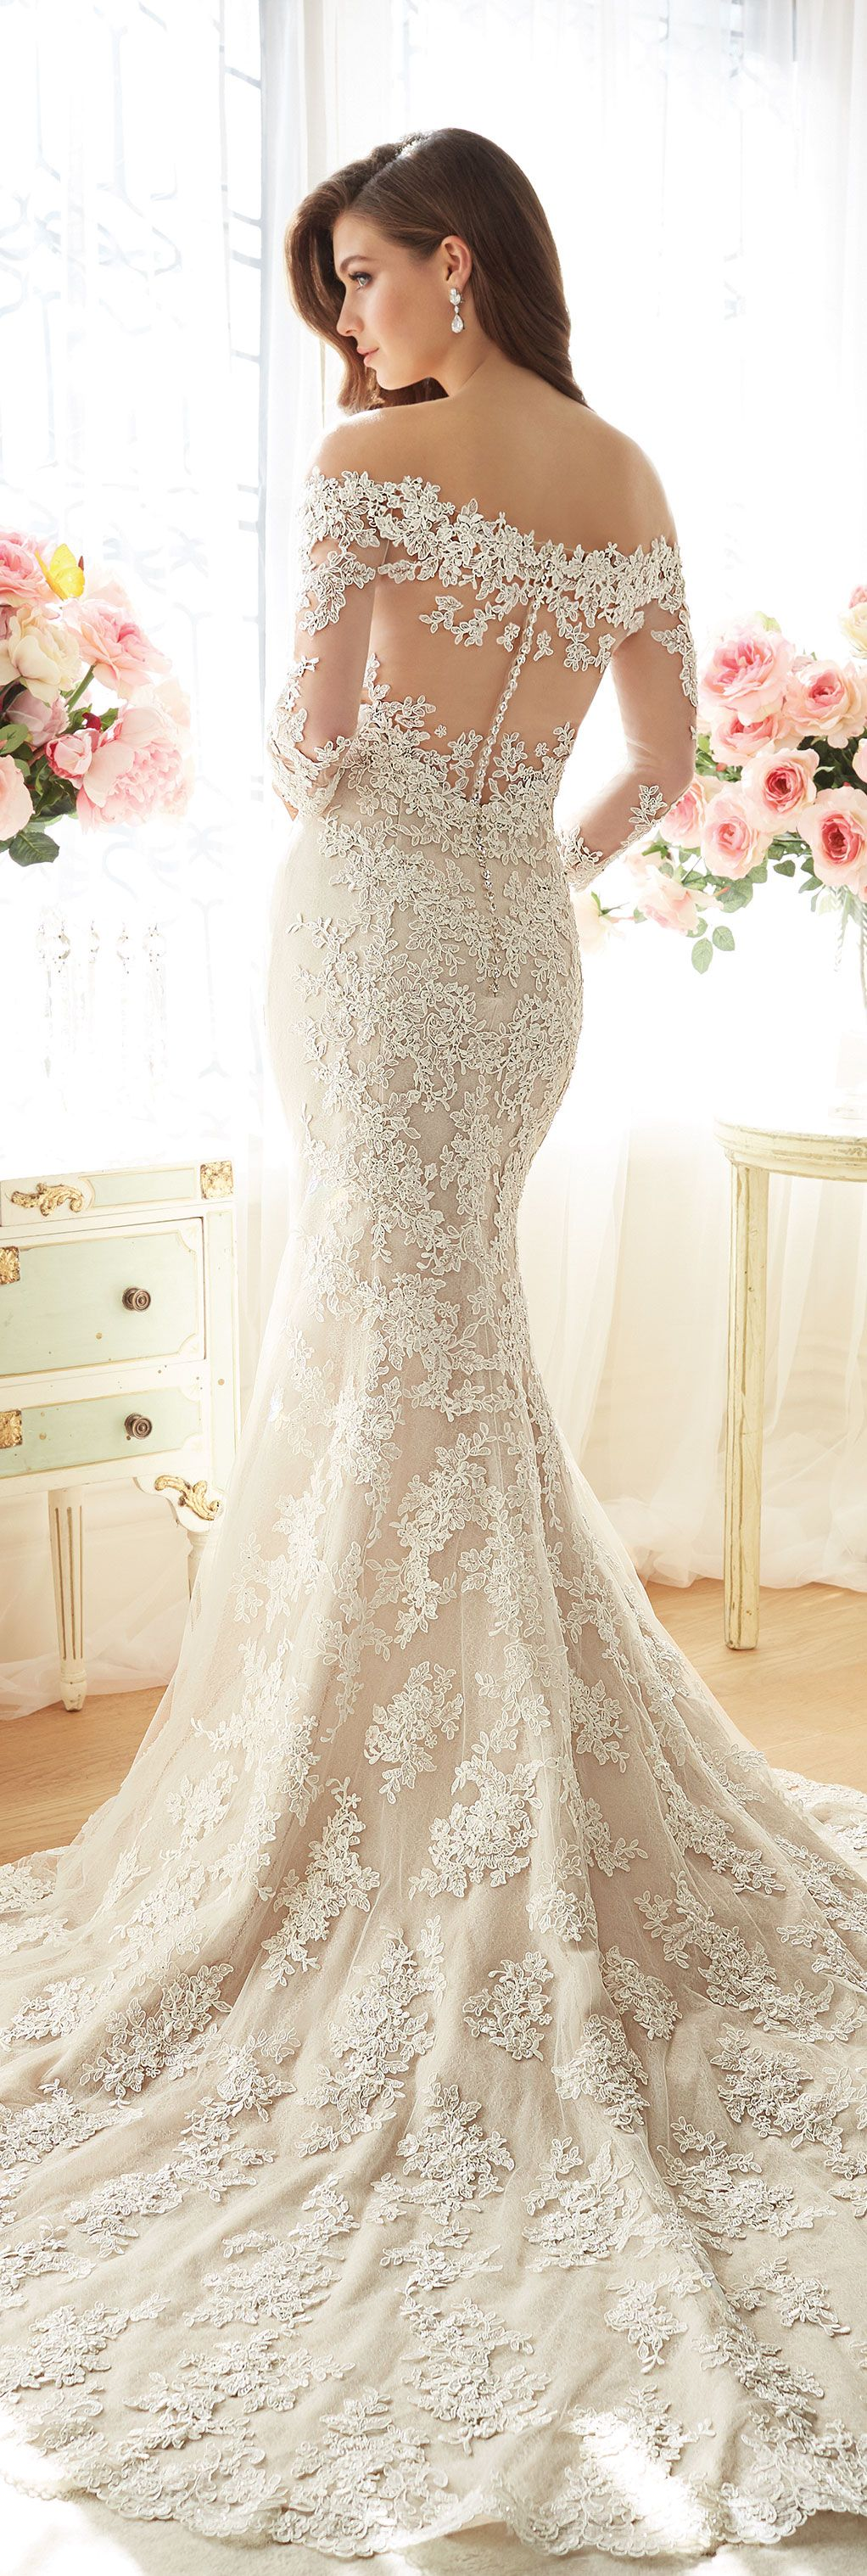 Off the shoulder lace tulle trumpet gown sophia tolli for Sophia tulle wedding dress